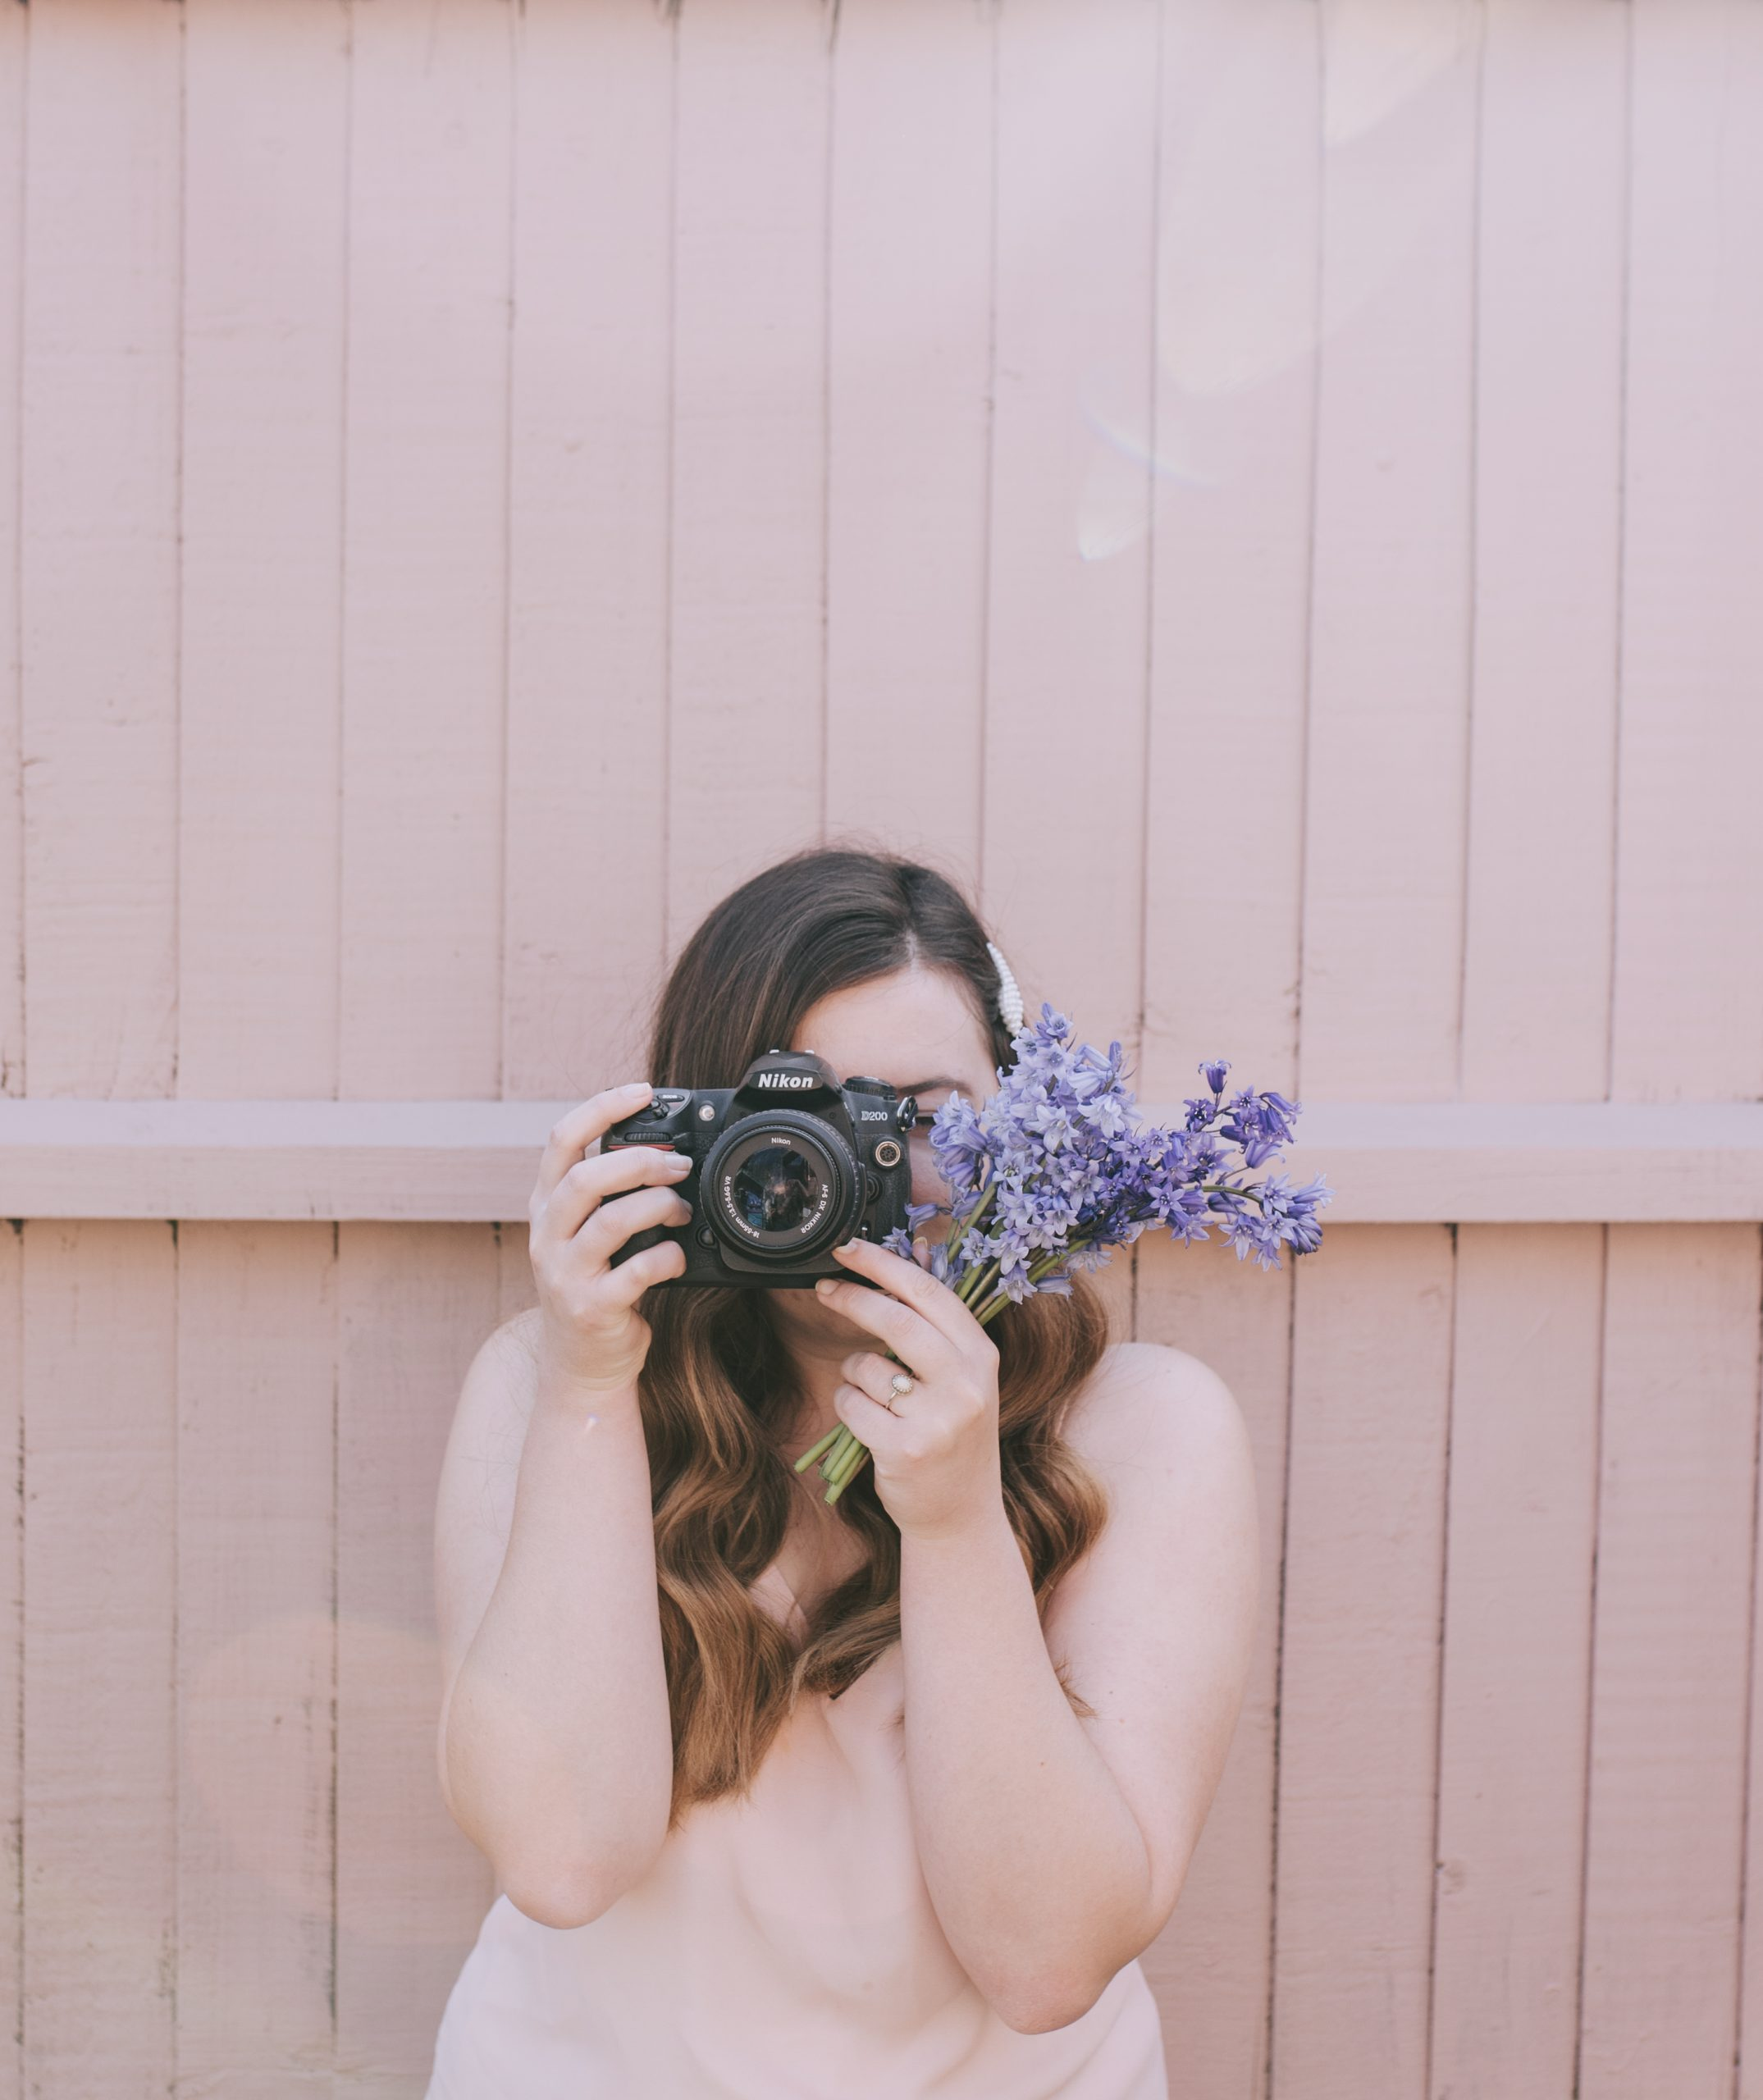 Holding Nikon D200 camera up to her face with a bunch of bluebells. Wearing light pink top against a blush pink fence.